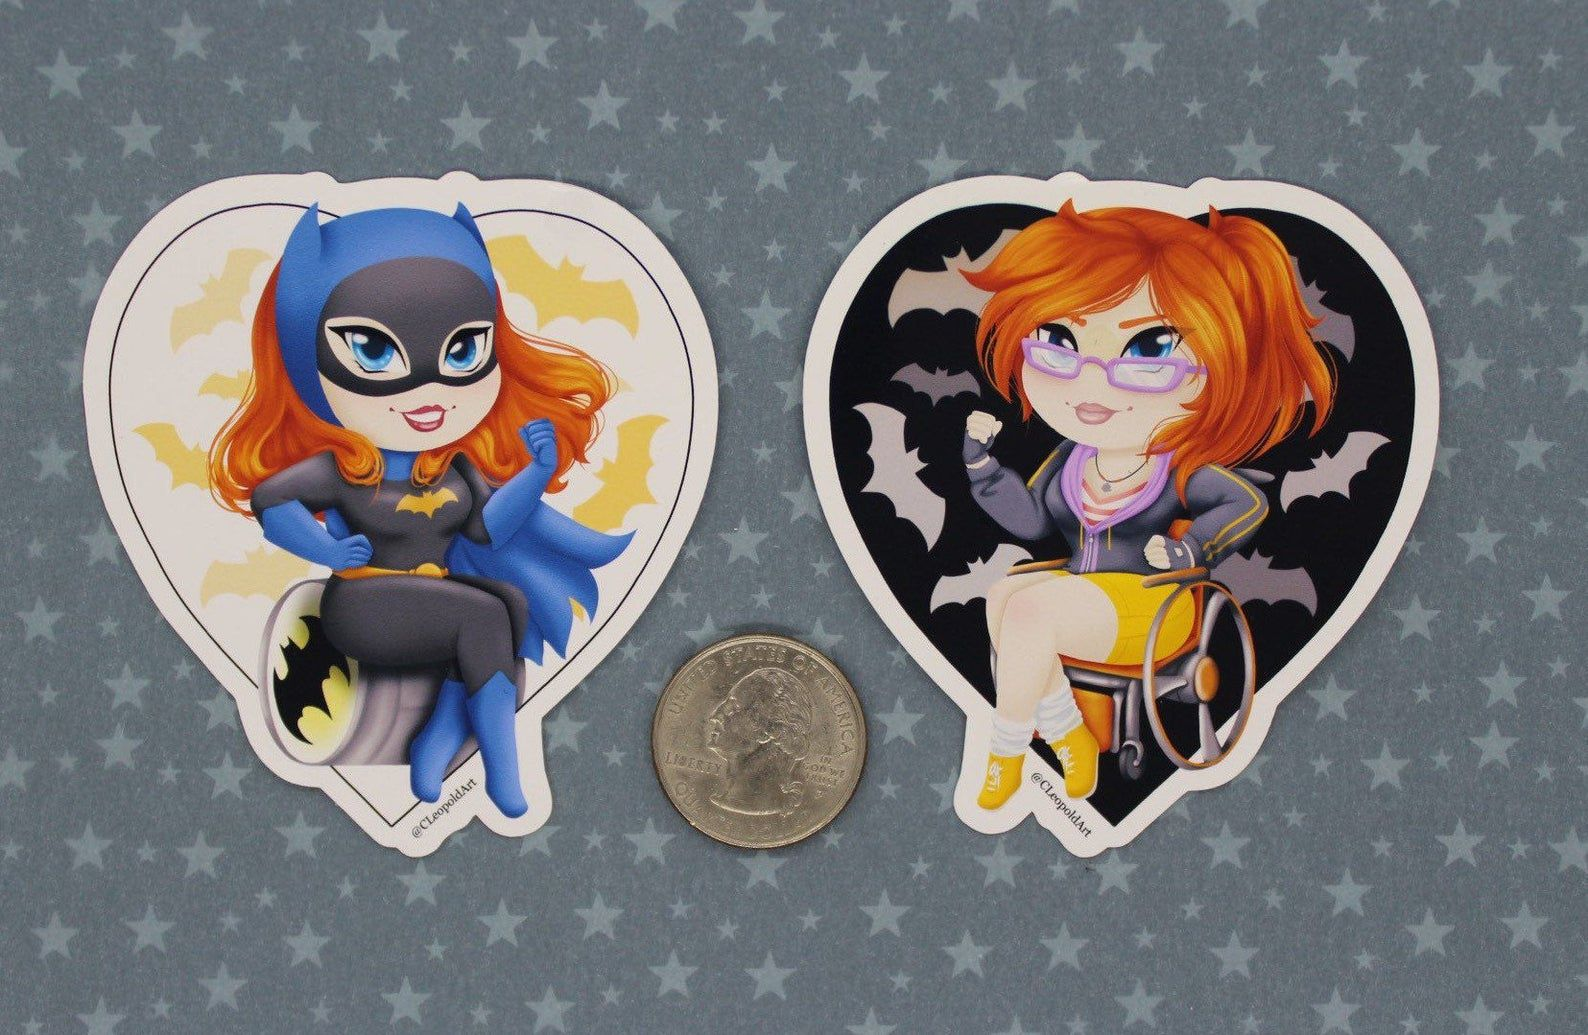 https://www.etsy.com/listing/720787740/batgirl-sticker?ga_order=most_relevant&ga_search_type=all&ga_view_type=gallery&ga_search_query=batgirl+sticker&ref=sr_gallery-1-9&organic_search_click=1